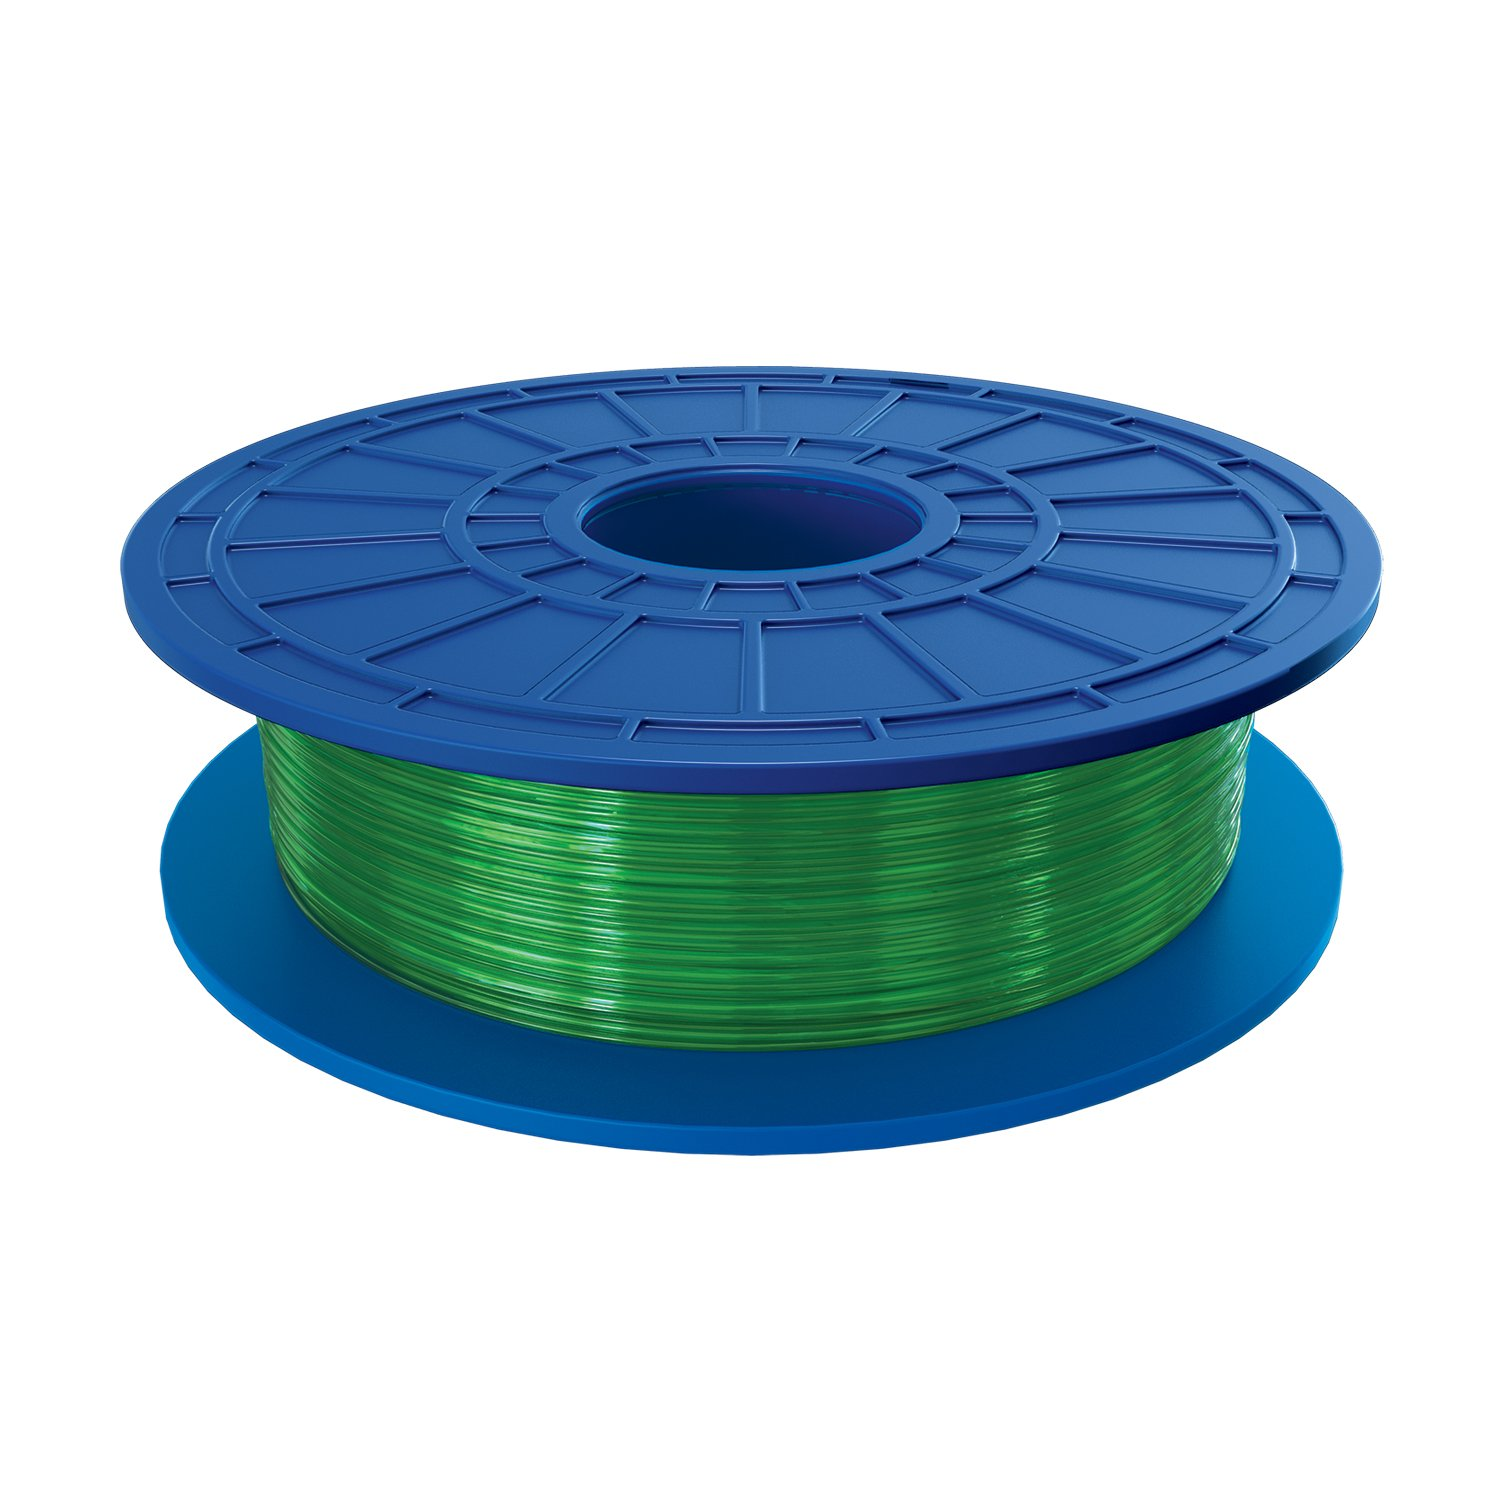 Dremel PLA 3D Printer Filament, 1.75 mm Diameter, 0.5 kg Spool Weight, Green